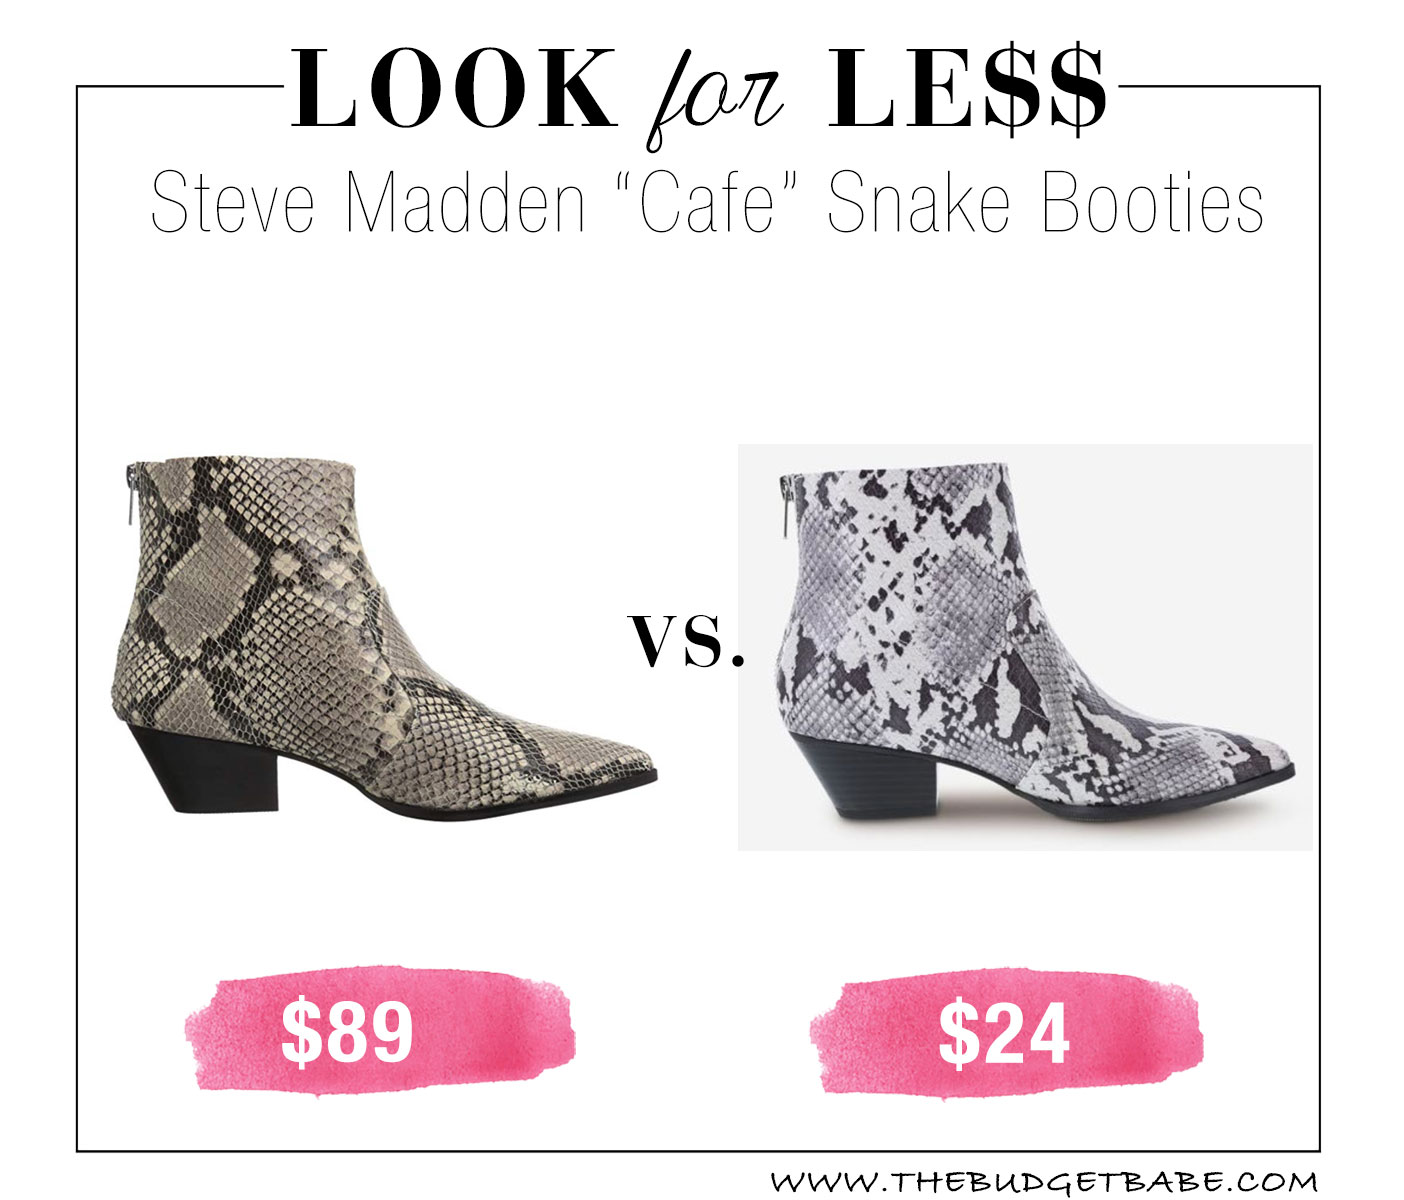 Snakeskin boot dupe at Payless!